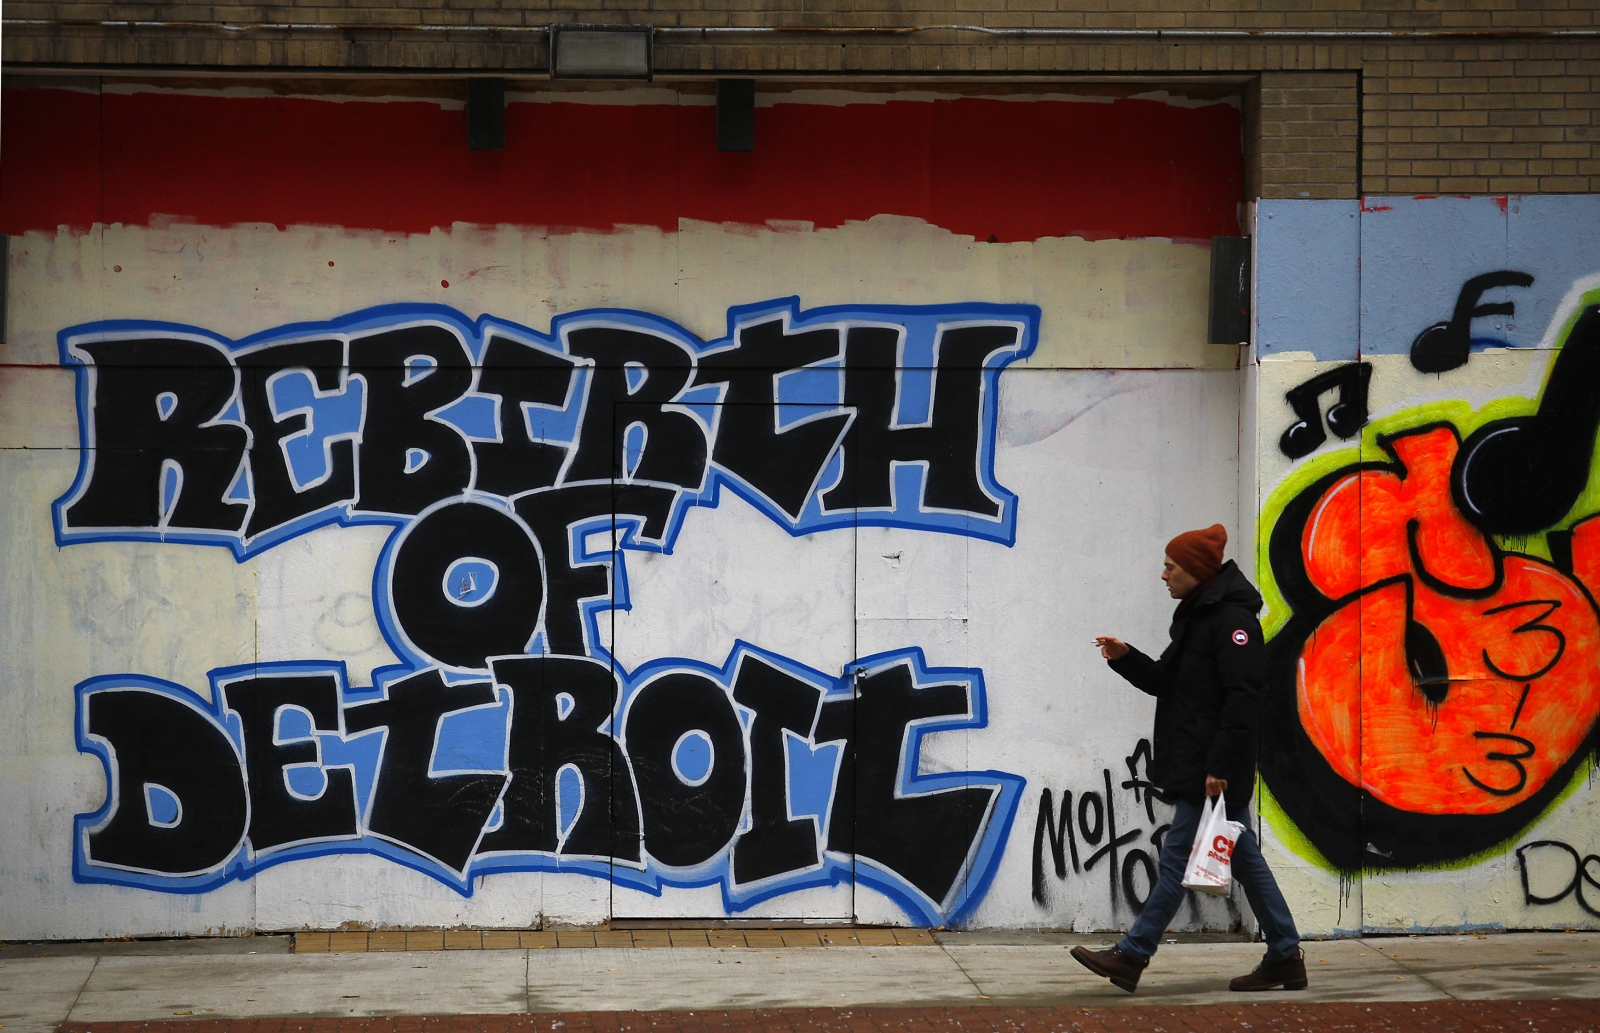 US Court Approves Detroit's Plan to Exit Bankruptcy